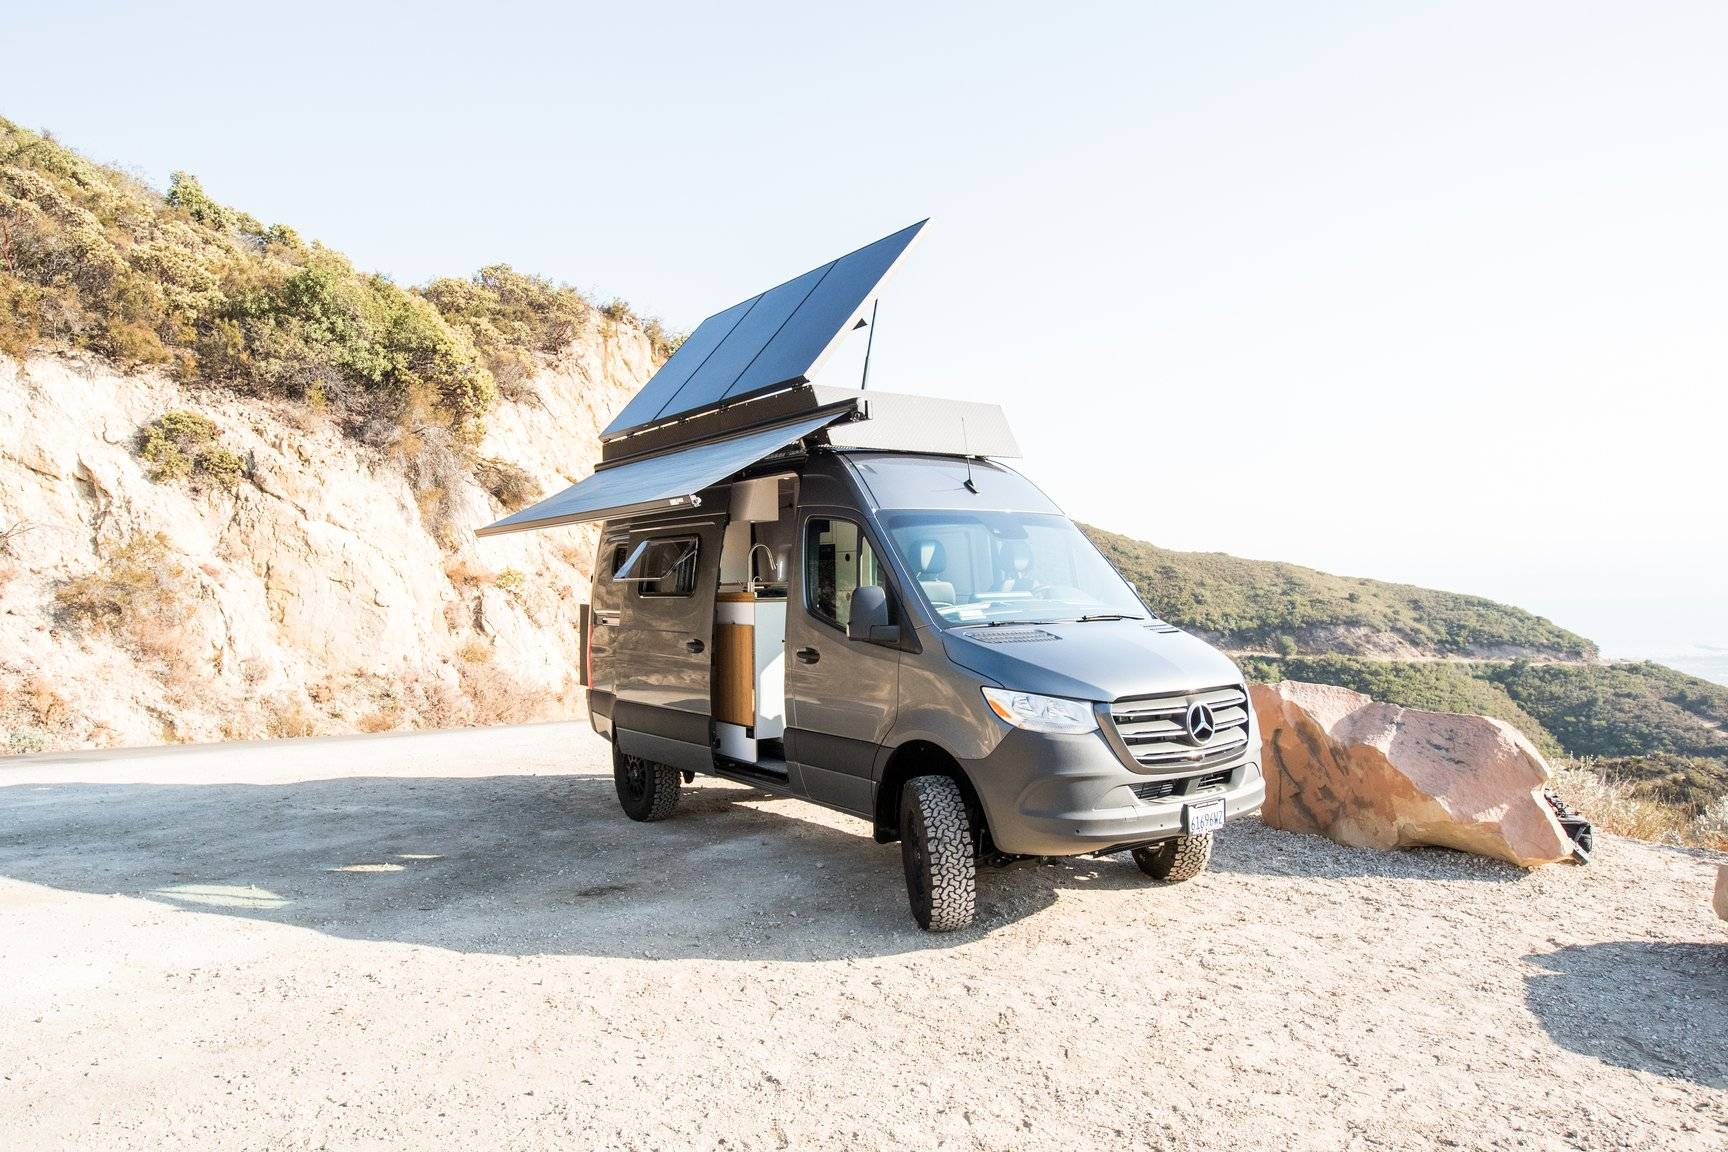 Mercedes 144 Sprinter van converted into a camper with solar panels and Flarespace flares to provide extra space.